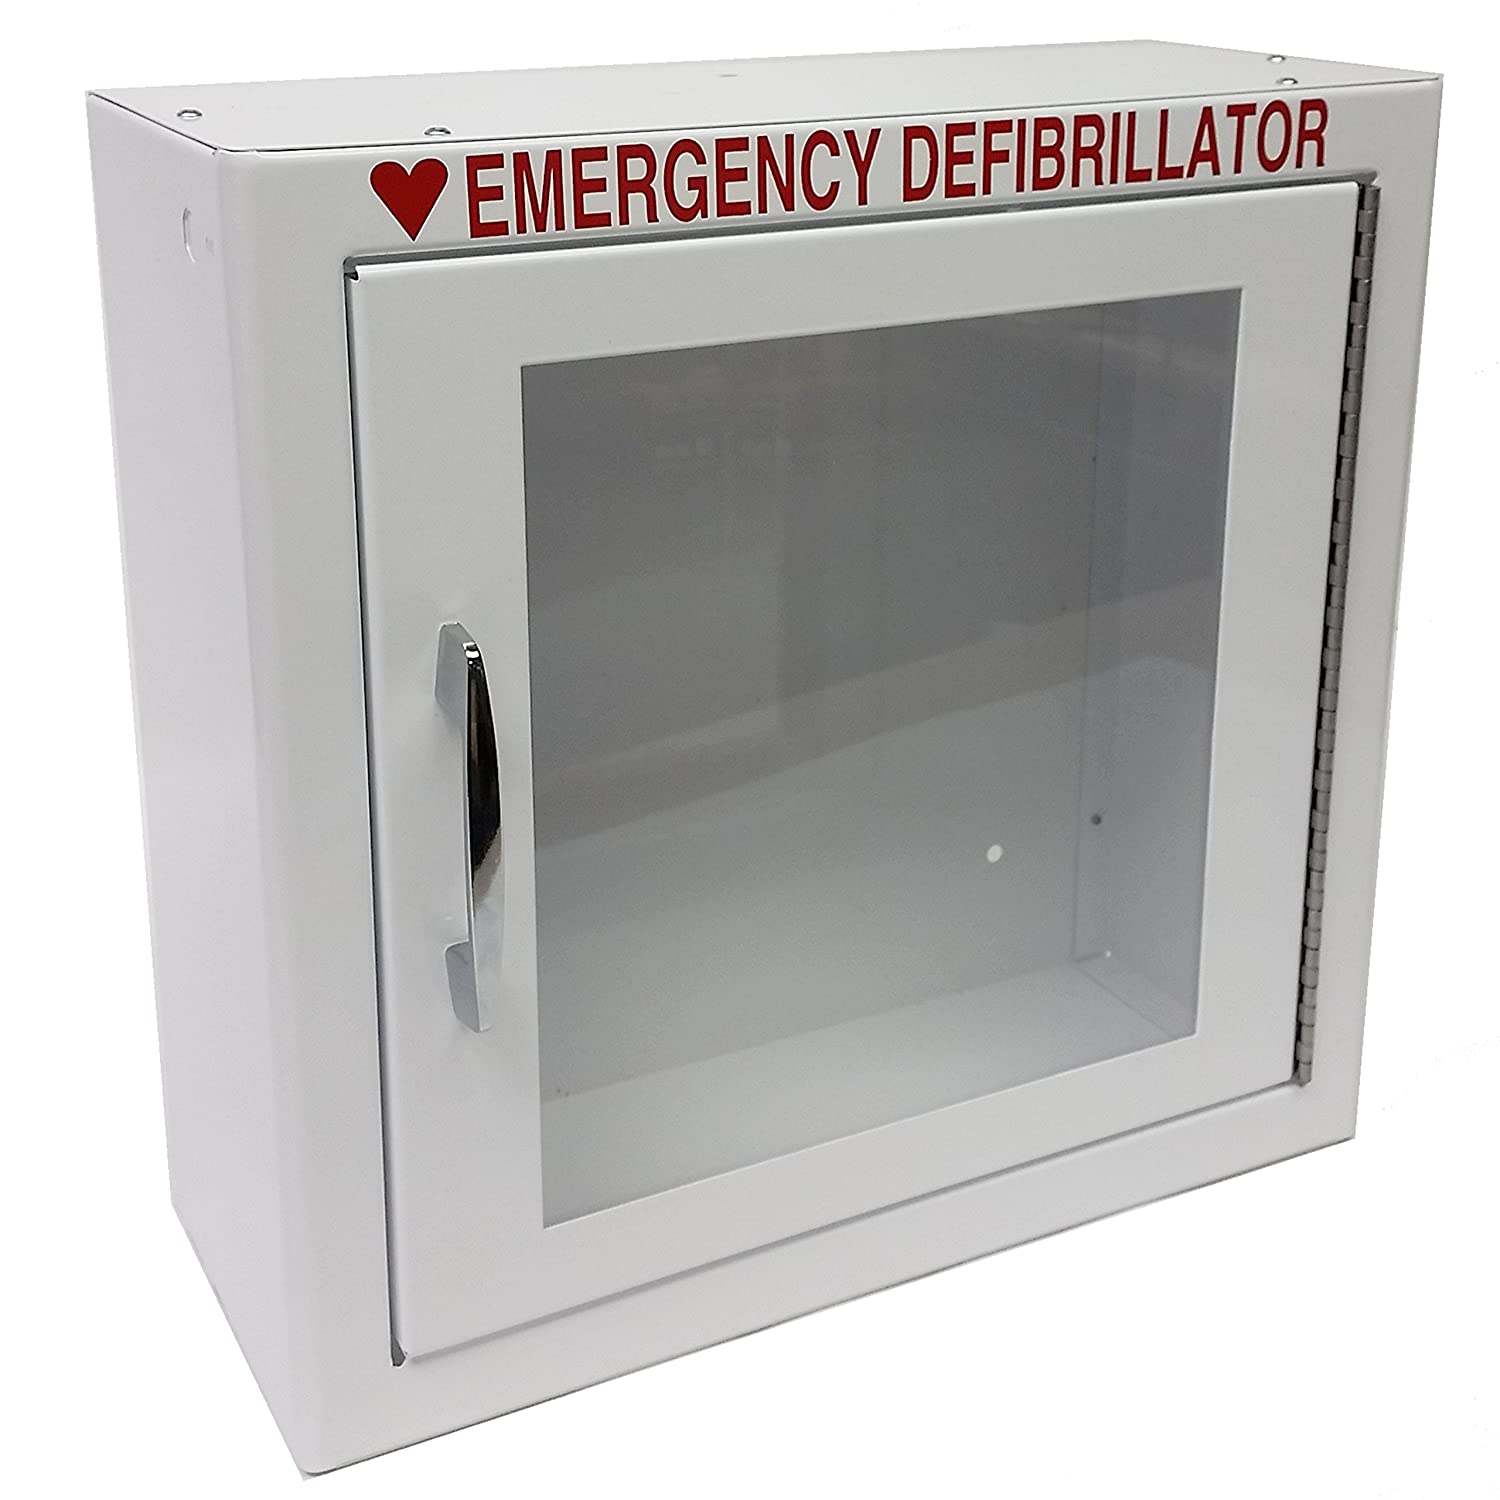 The First Voice TS145SM AED Basic Wall Standard Cabinet, 13.5' W x 13' H x 5.25' D 13.5 W x 13 H x 5.25 D Think Safe Inc.